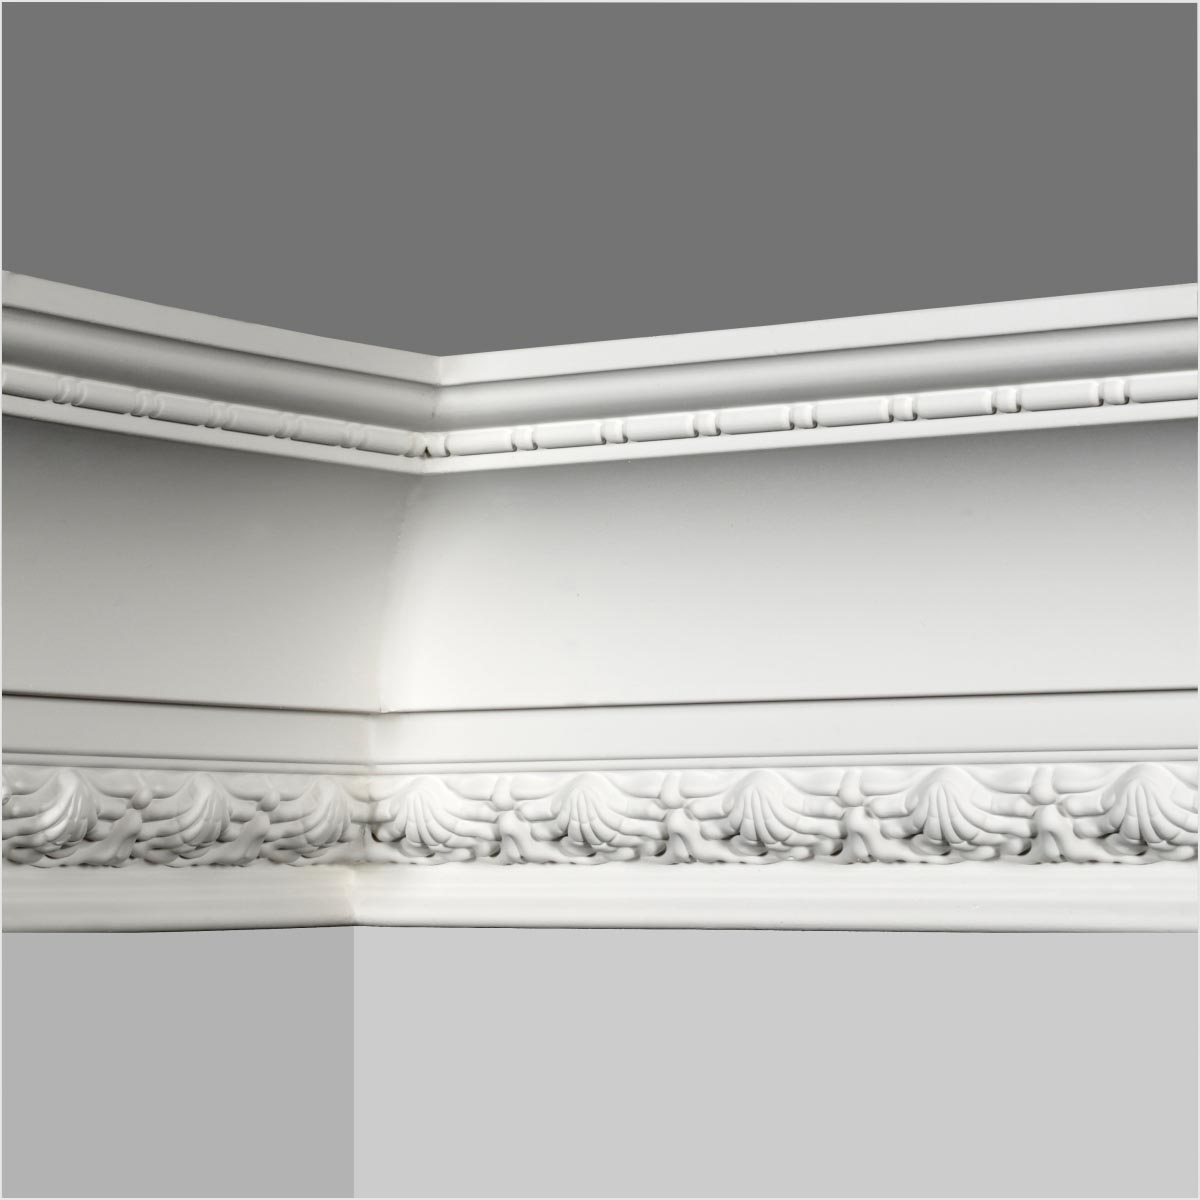 Polyurethane ceiling decorative molding